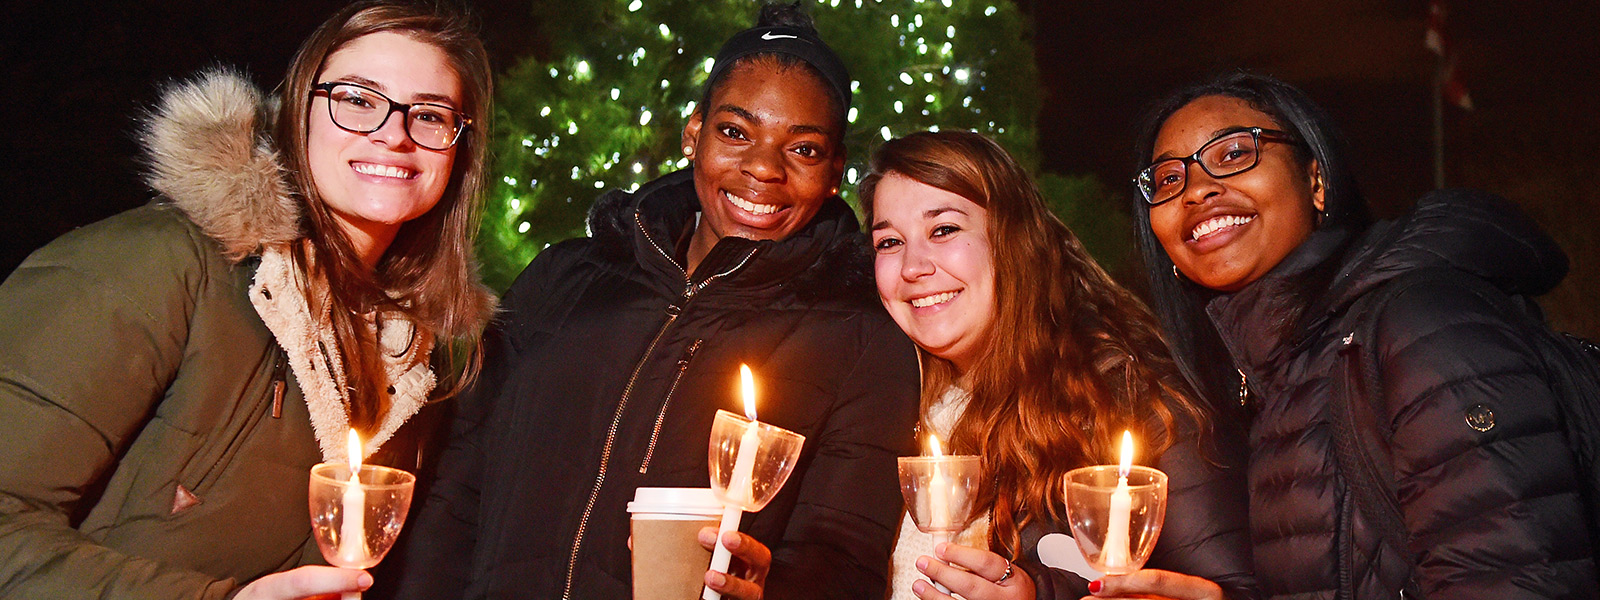 Female students holding candles in front of lit Christmas tree